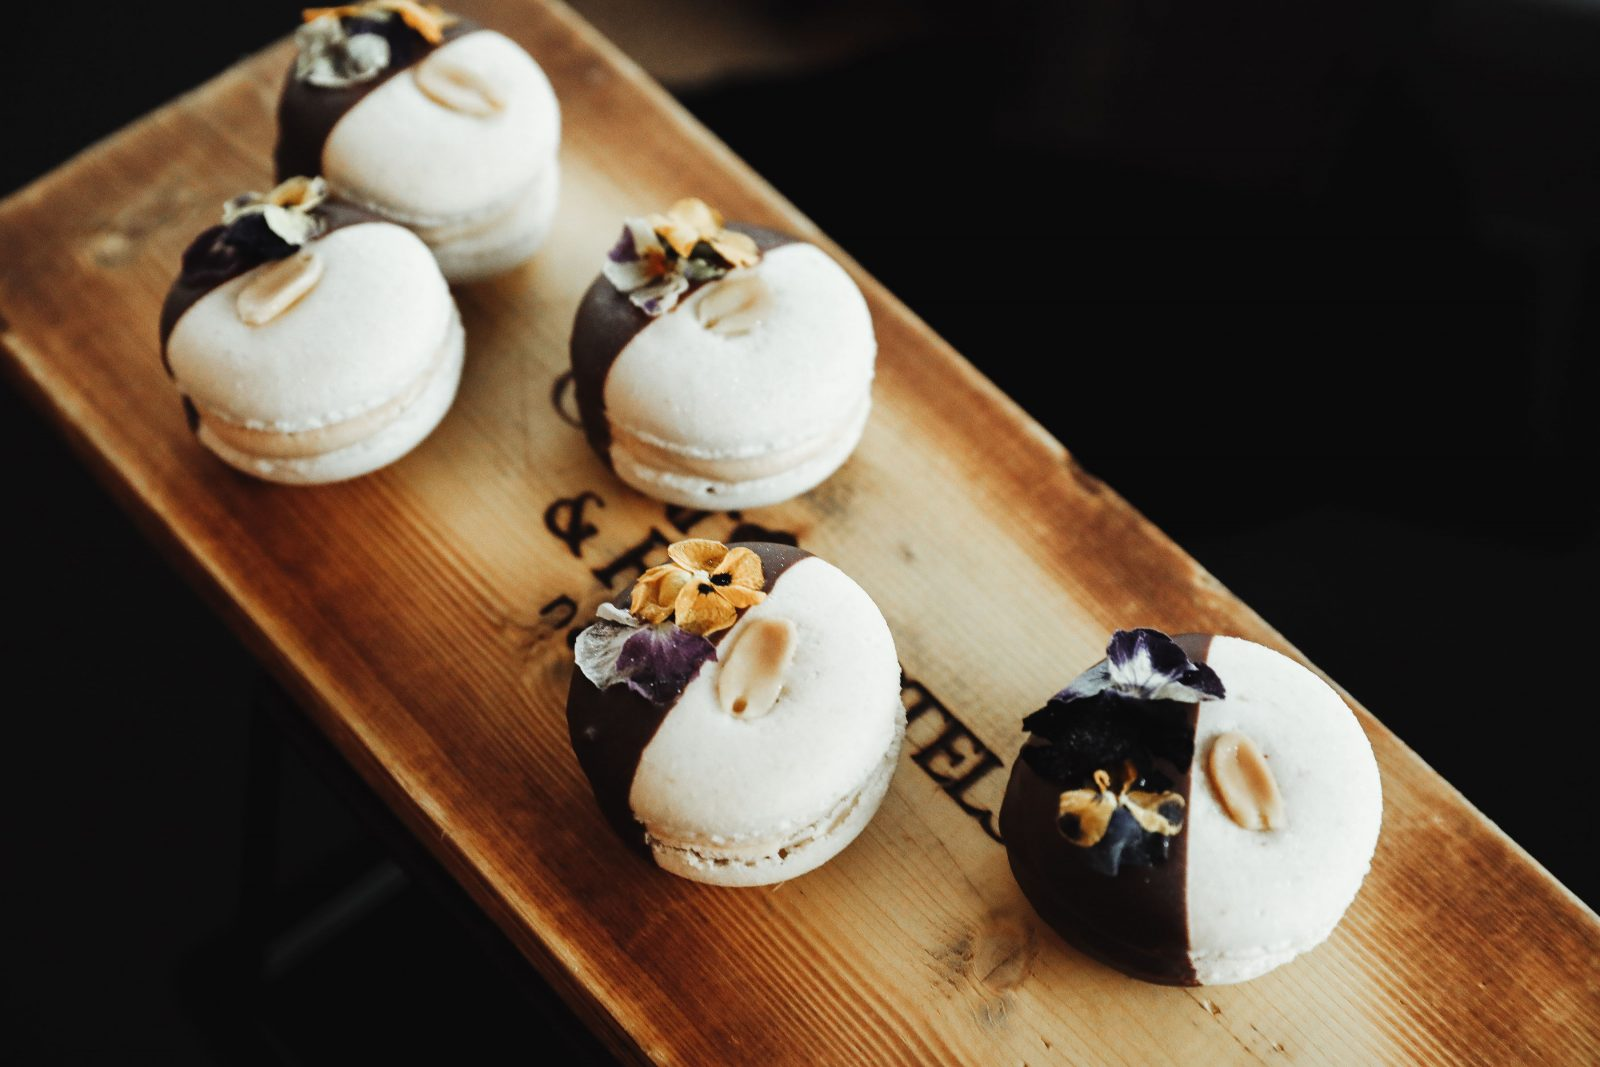 a dessert of macarons from the Omni Hotel in Nashville, for the Women's Edit Event 2020.